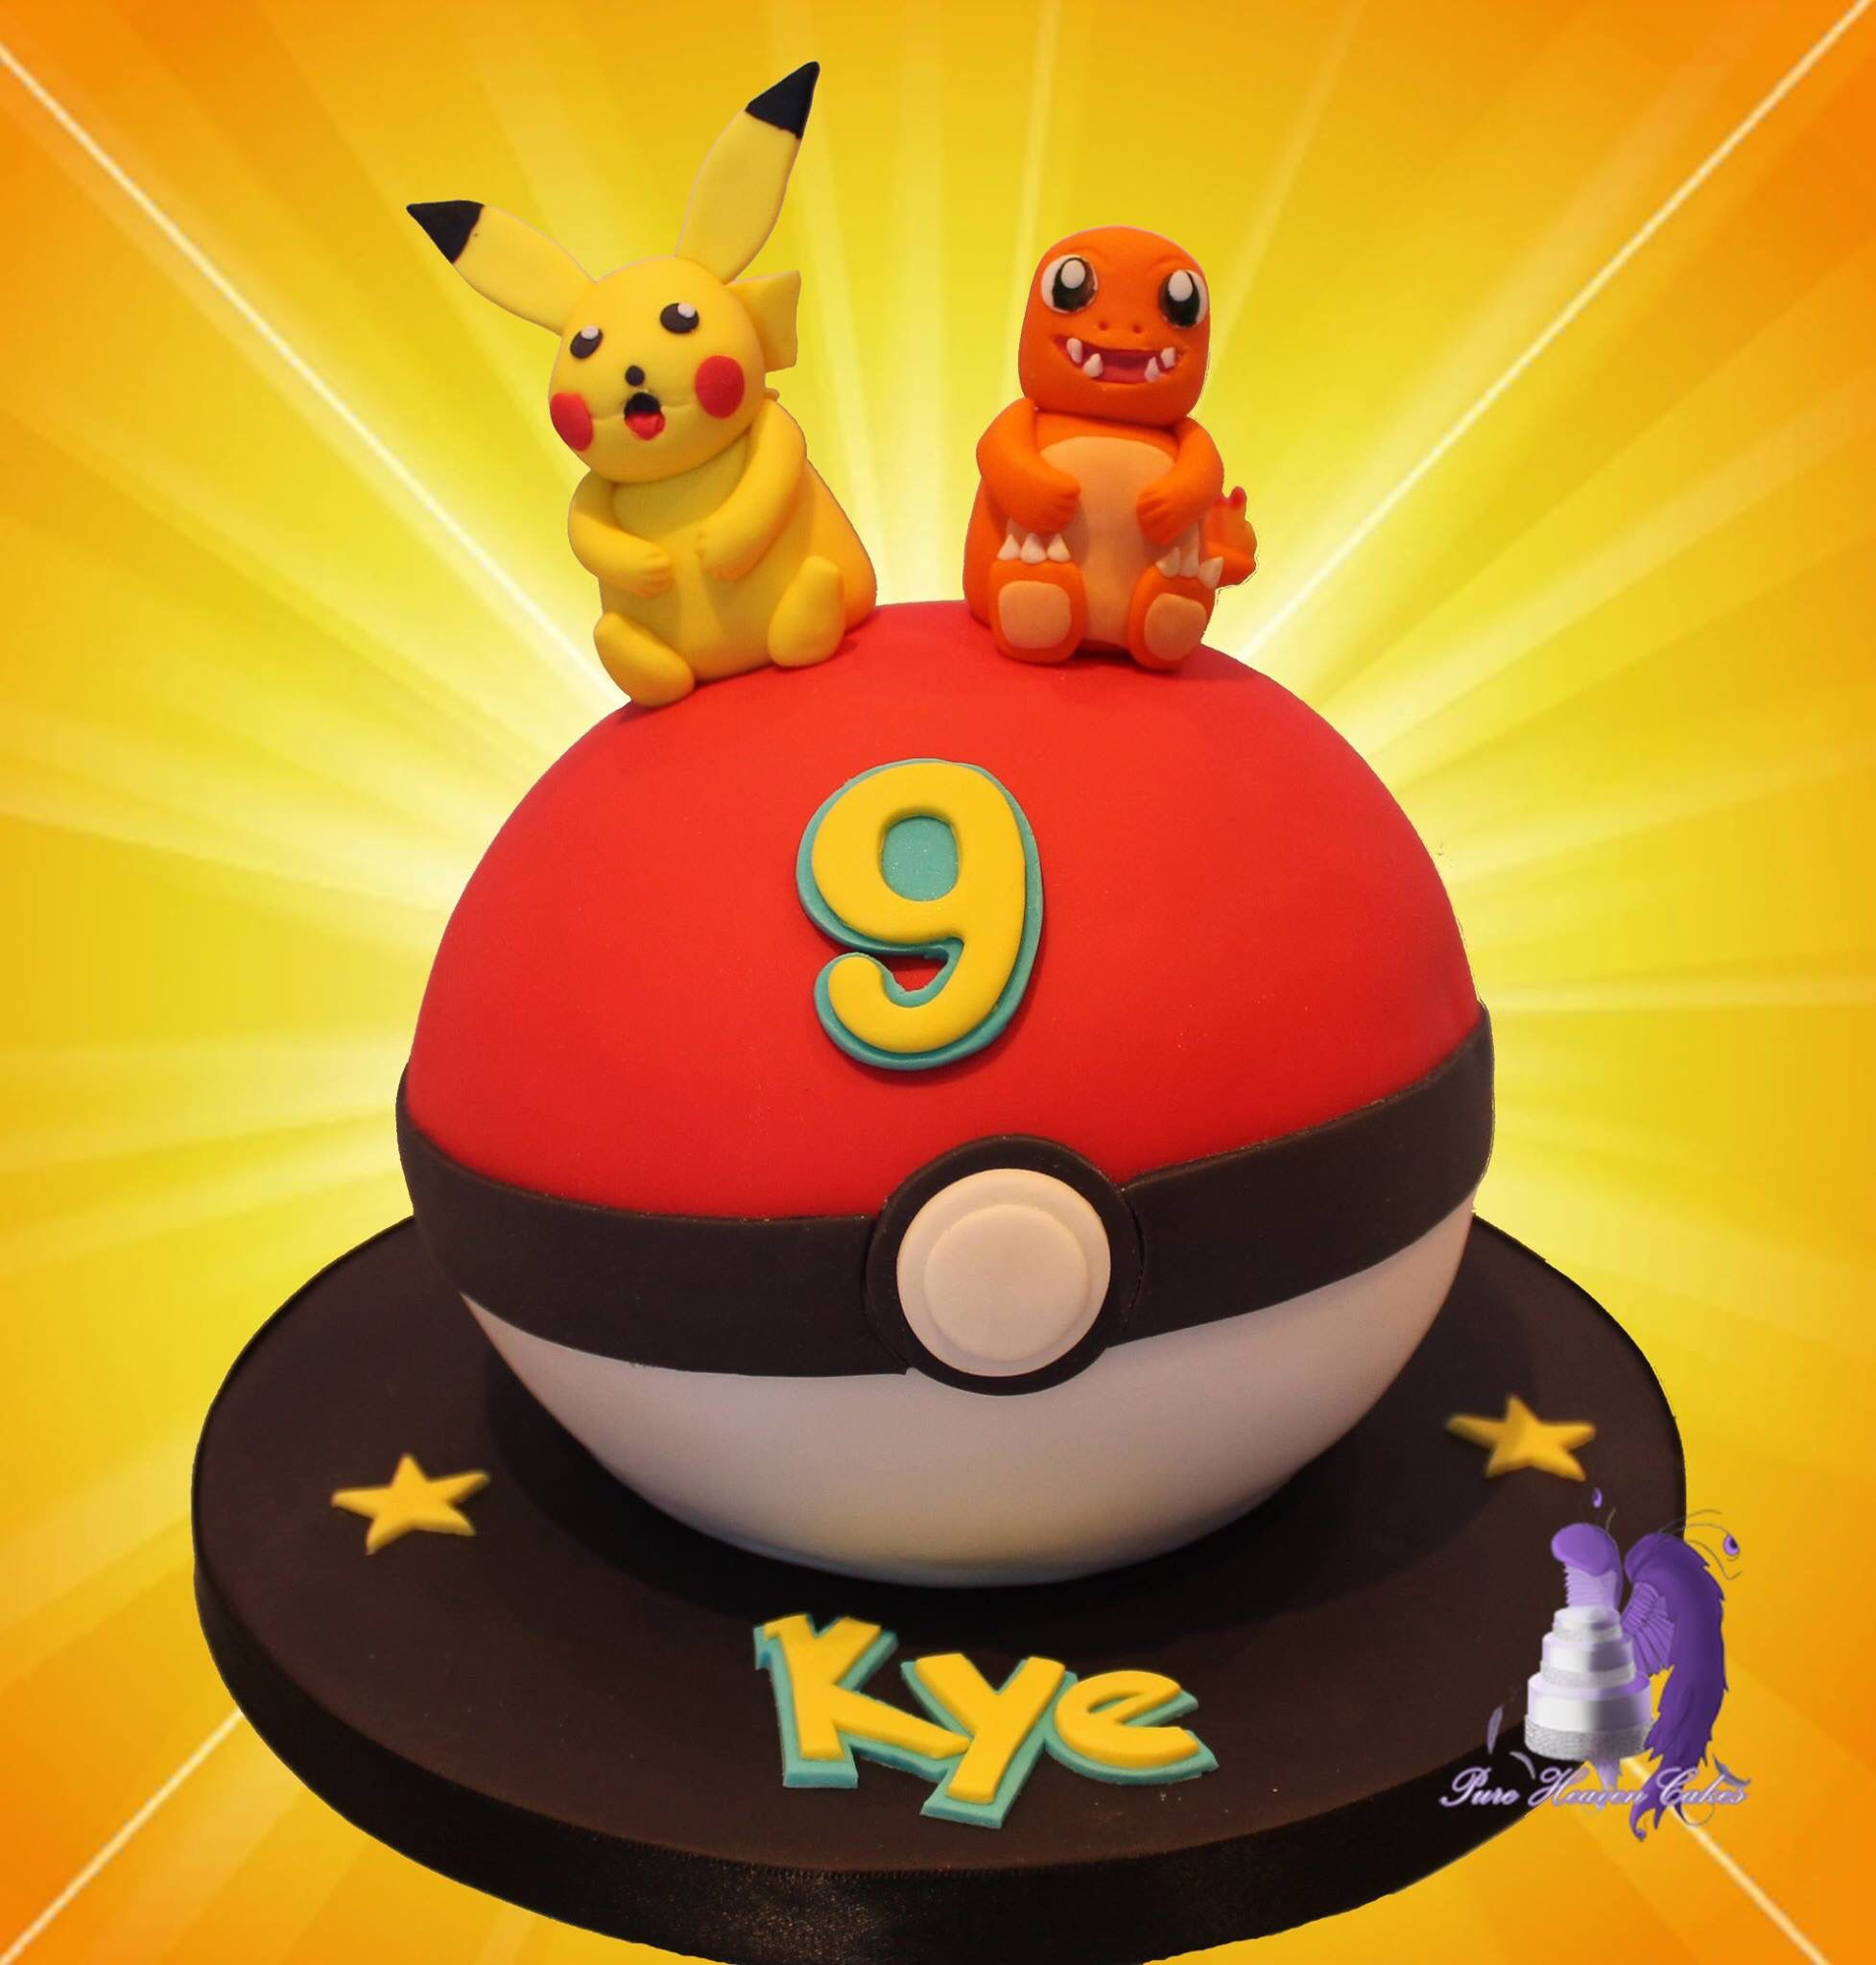 Awe Inspiring Pokemon Cake Featuring Pikachu And Charmander With Images Funny Birthday Cards Online Alyptdamsfinfo